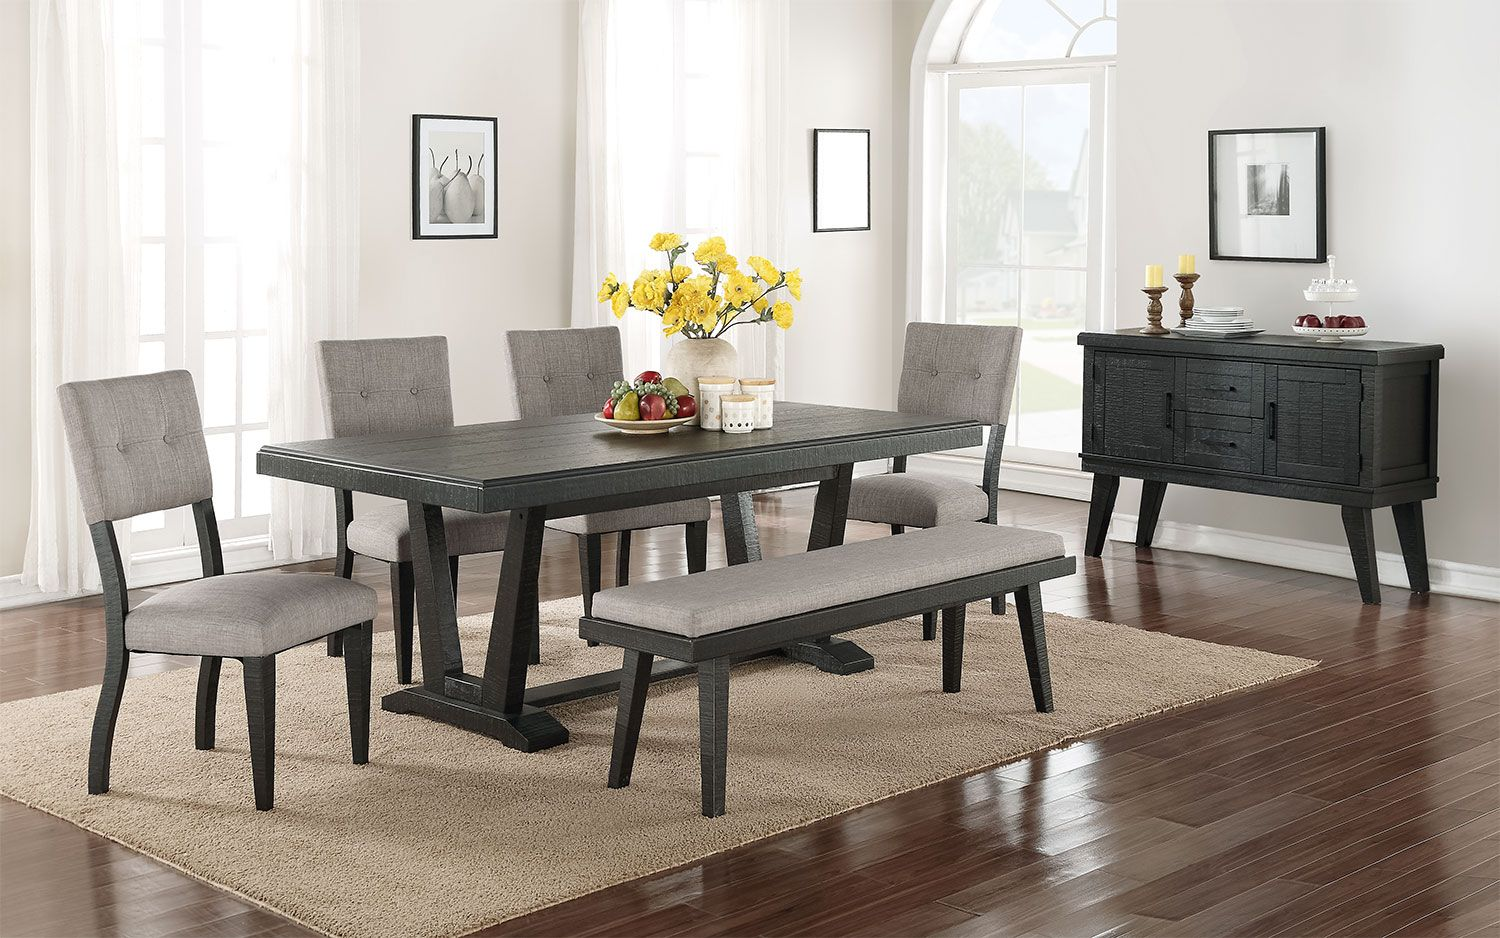 Dining Room Furniture Imari 6 Piece Dining Room Set Black And Grey Dining Furniture Sets Dining Room Furniture Black Dining Room